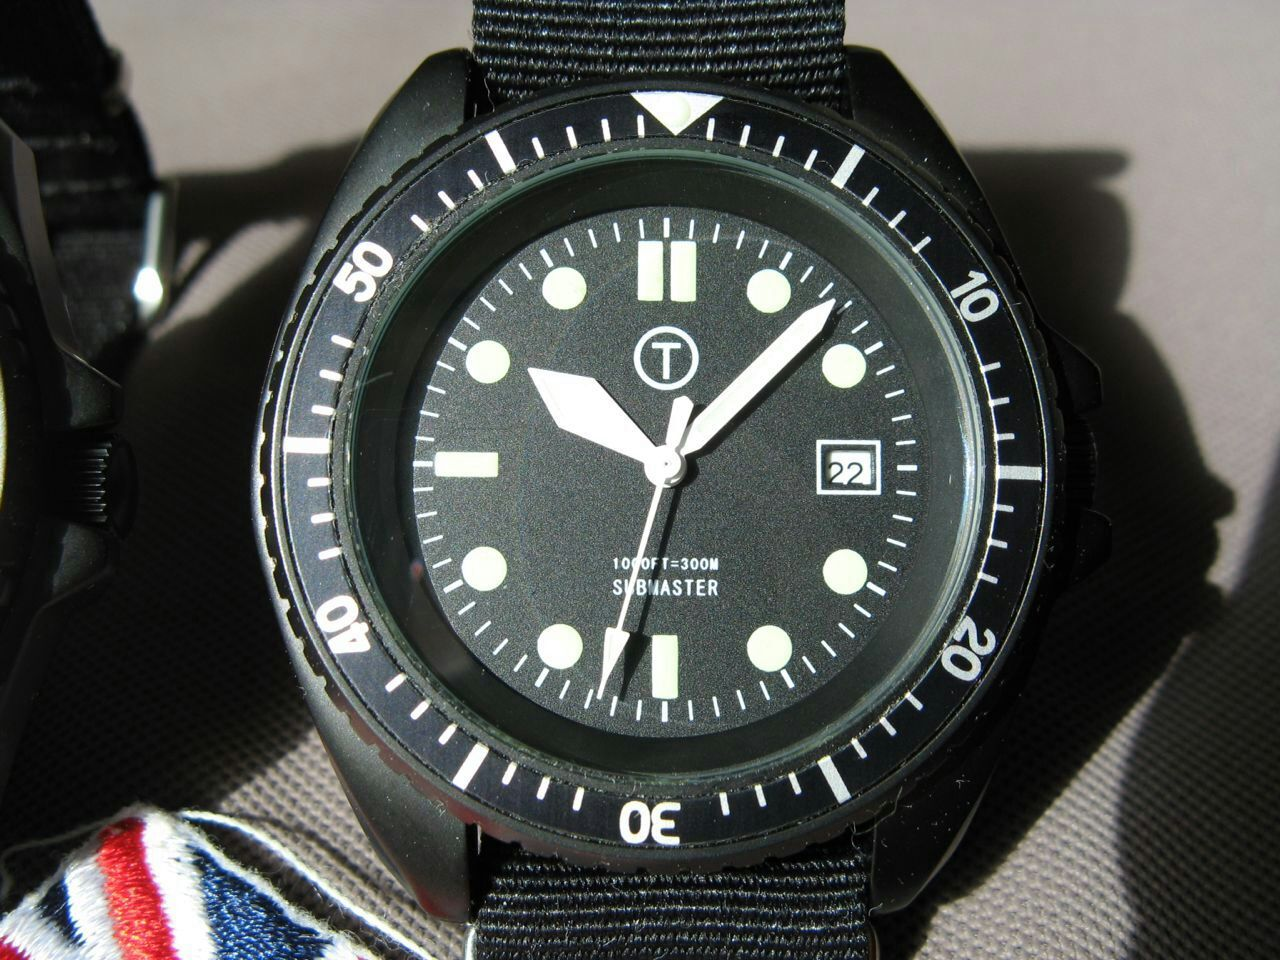 cooper submaster sas sbs military pvd divers watch 300m